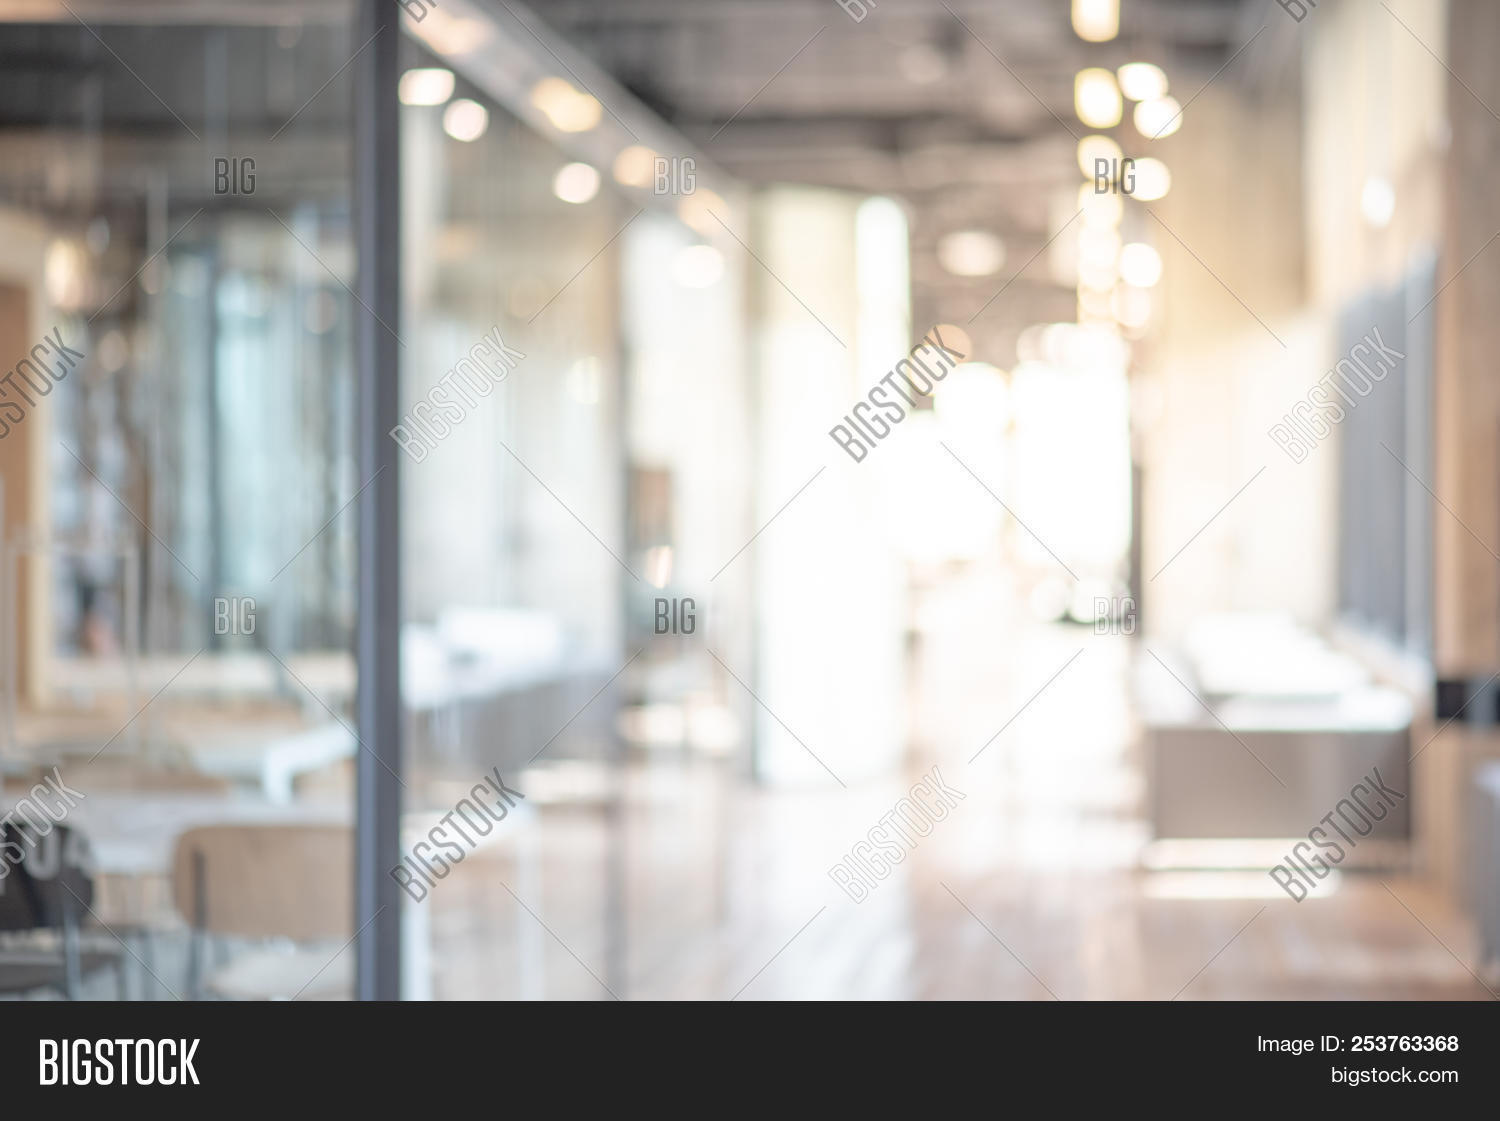 abstract,architecture,backdrop,background,blur,blurred,blurry,bokeh,bright,building,business,city,clinic,commercial,corridor,decor,defocused,department,depth,design,focus,glassy,hall,hallway,hospital,indoor,inside,interior,light,living,lobby,luxury,mall,medical,meeting,modern,office,perspective,public,retail,room,shop,shopping,soft,space,store,urban,white,window,workplace